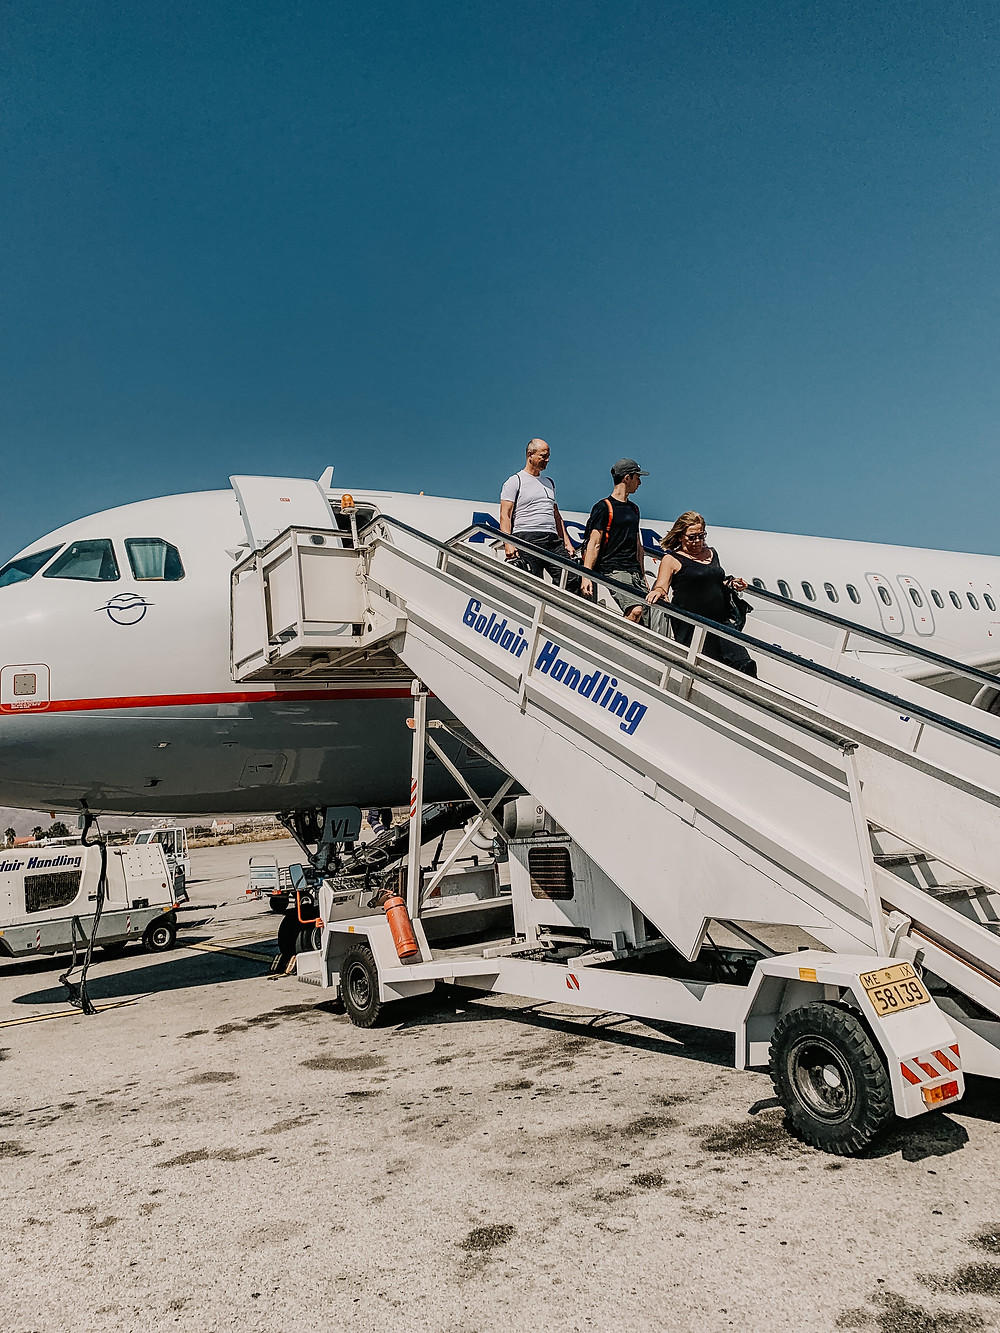 Plane Flight Mobile Staircase Airline Flight Landing with Family